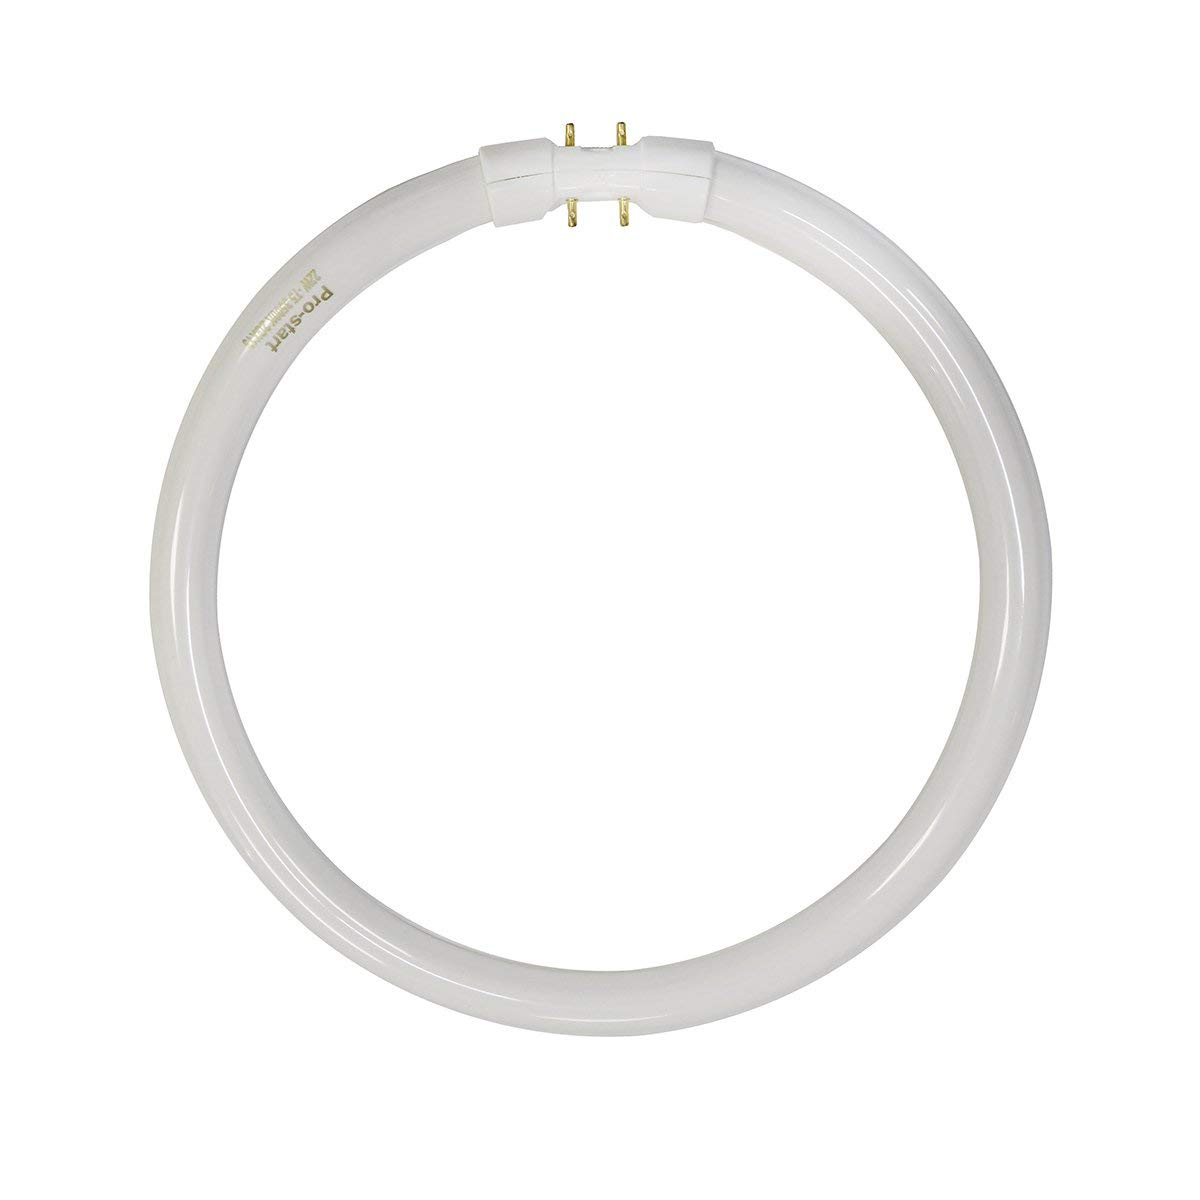 Color Type: T5 Circular Fluorescent FCT5-32W-D Daylight 6400K Watts: 32W